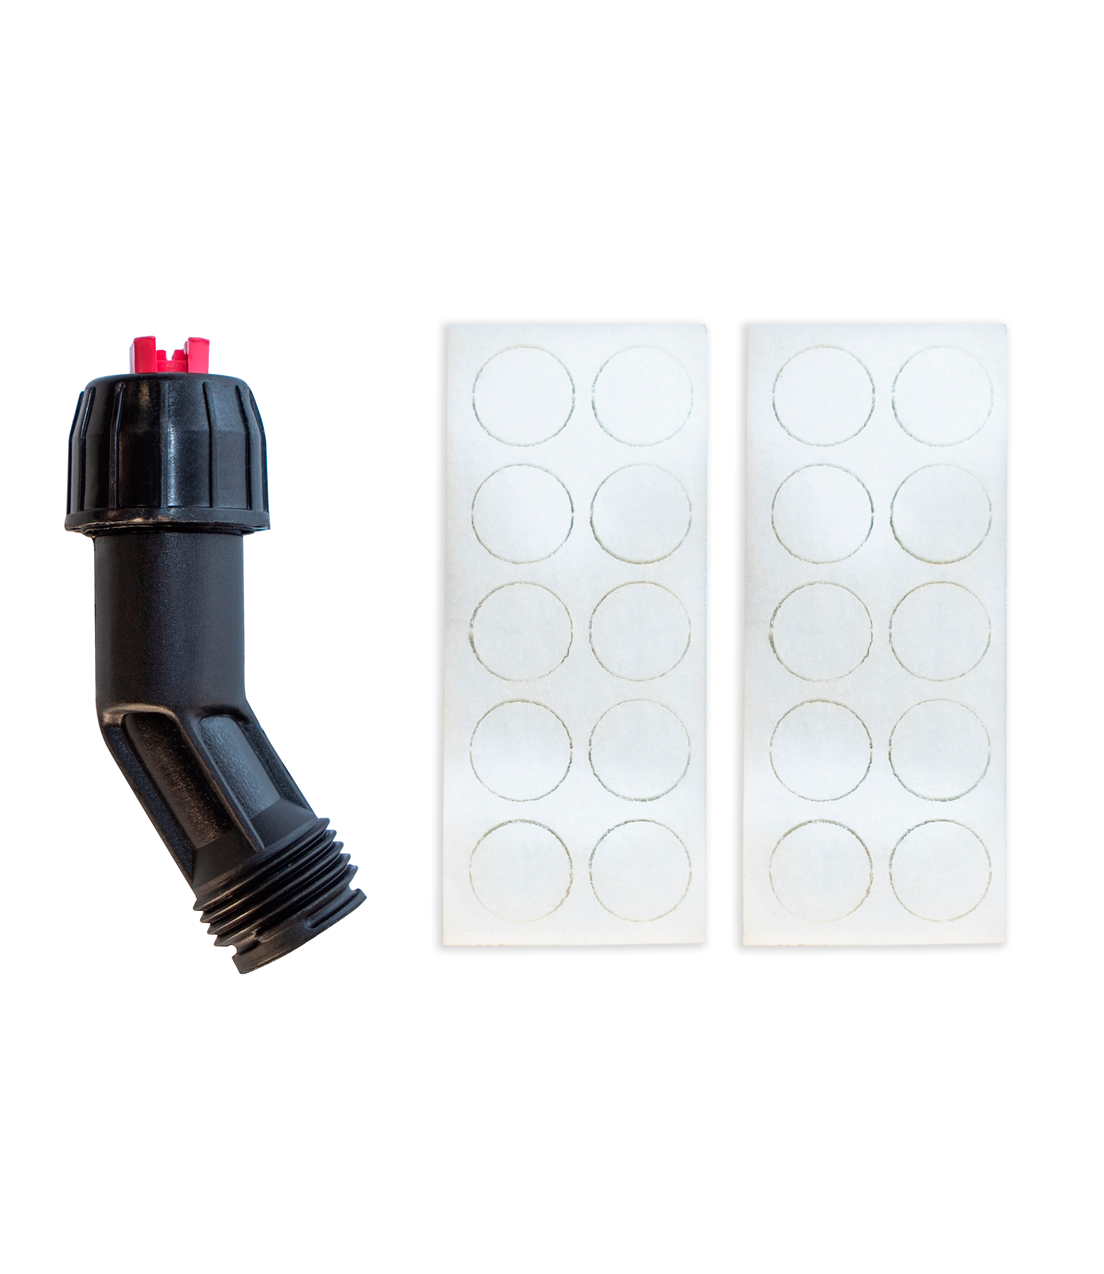 Load image into Gallery viewer, Foam and Angled Nozzle Kit for Foam Pro 9-12